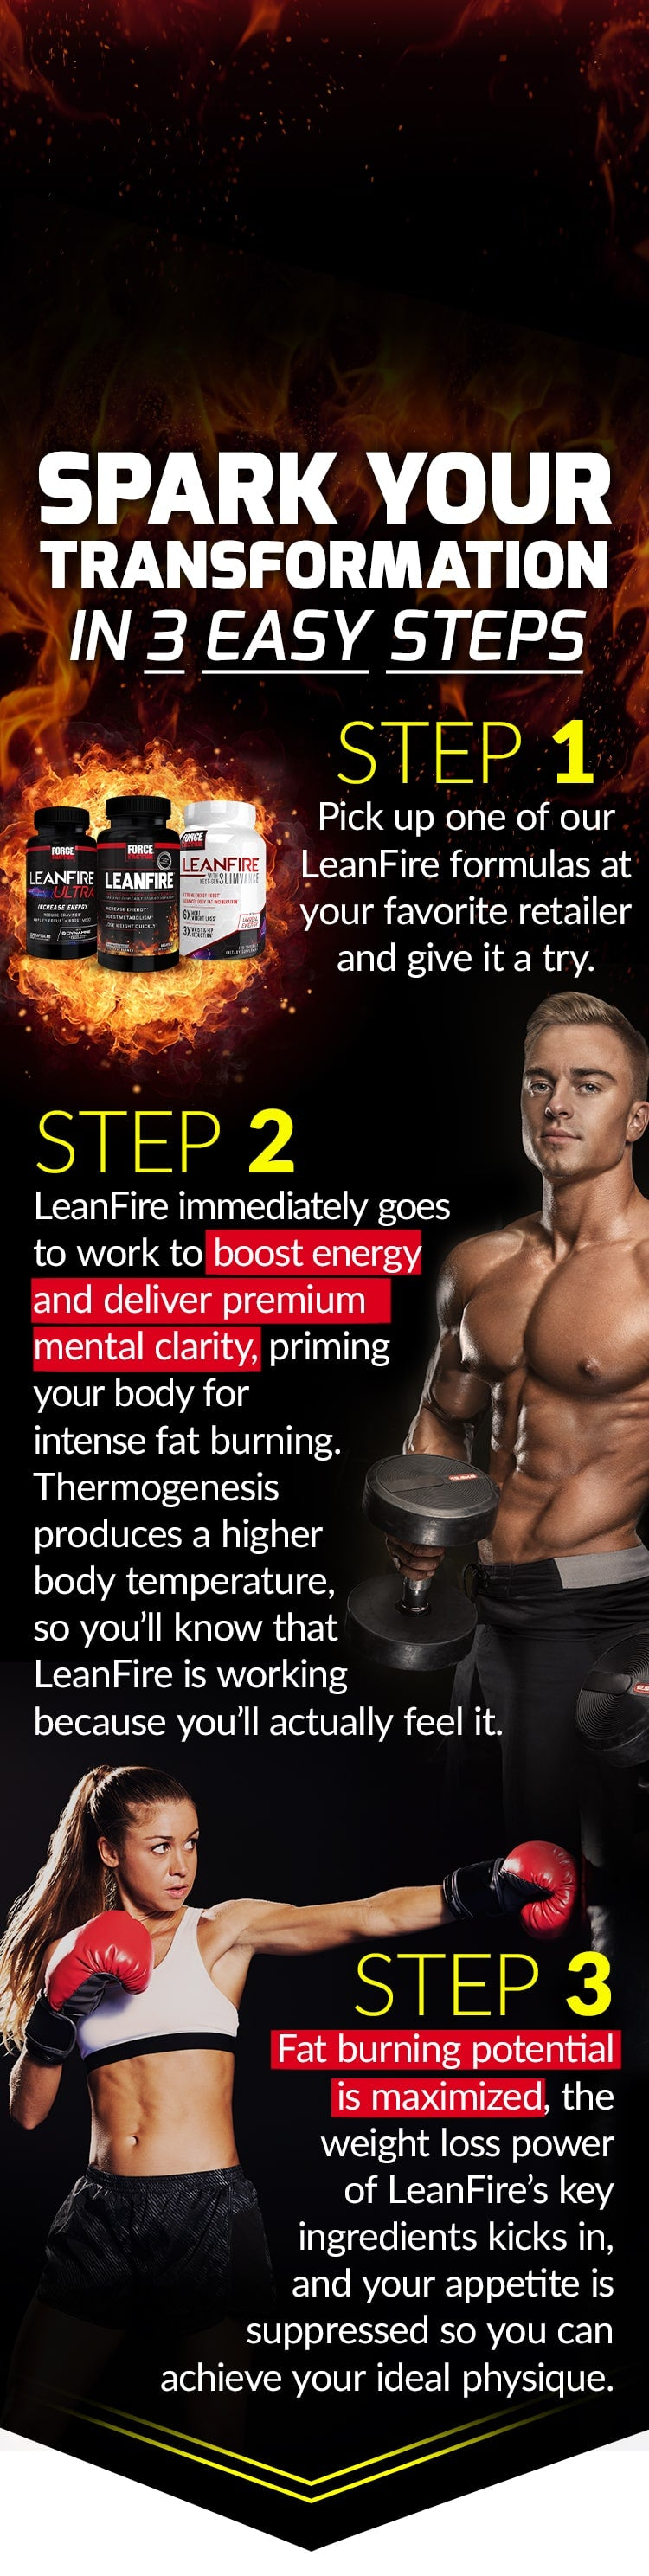 SPARK YOUR TRANSFORMATION IN 3 EASY STEPS. STEP 1: Pick up one of our LeanFire formulas at your favorite retailer and give it a try. STEP 2: LeanFire immediately goes to work to boost energy and deliver premium mental clarity, priming your body for intense fat burning. Thermogenesis produces a higher body temperature, so you'll know that LeanFire is working because you'll actually feel it. STEP 3: Fat burning potential is maximized, the weight loss power of LeanFire's key ingredients kicks in, and your appetite is suppressed so you can achieve your ideal physique.